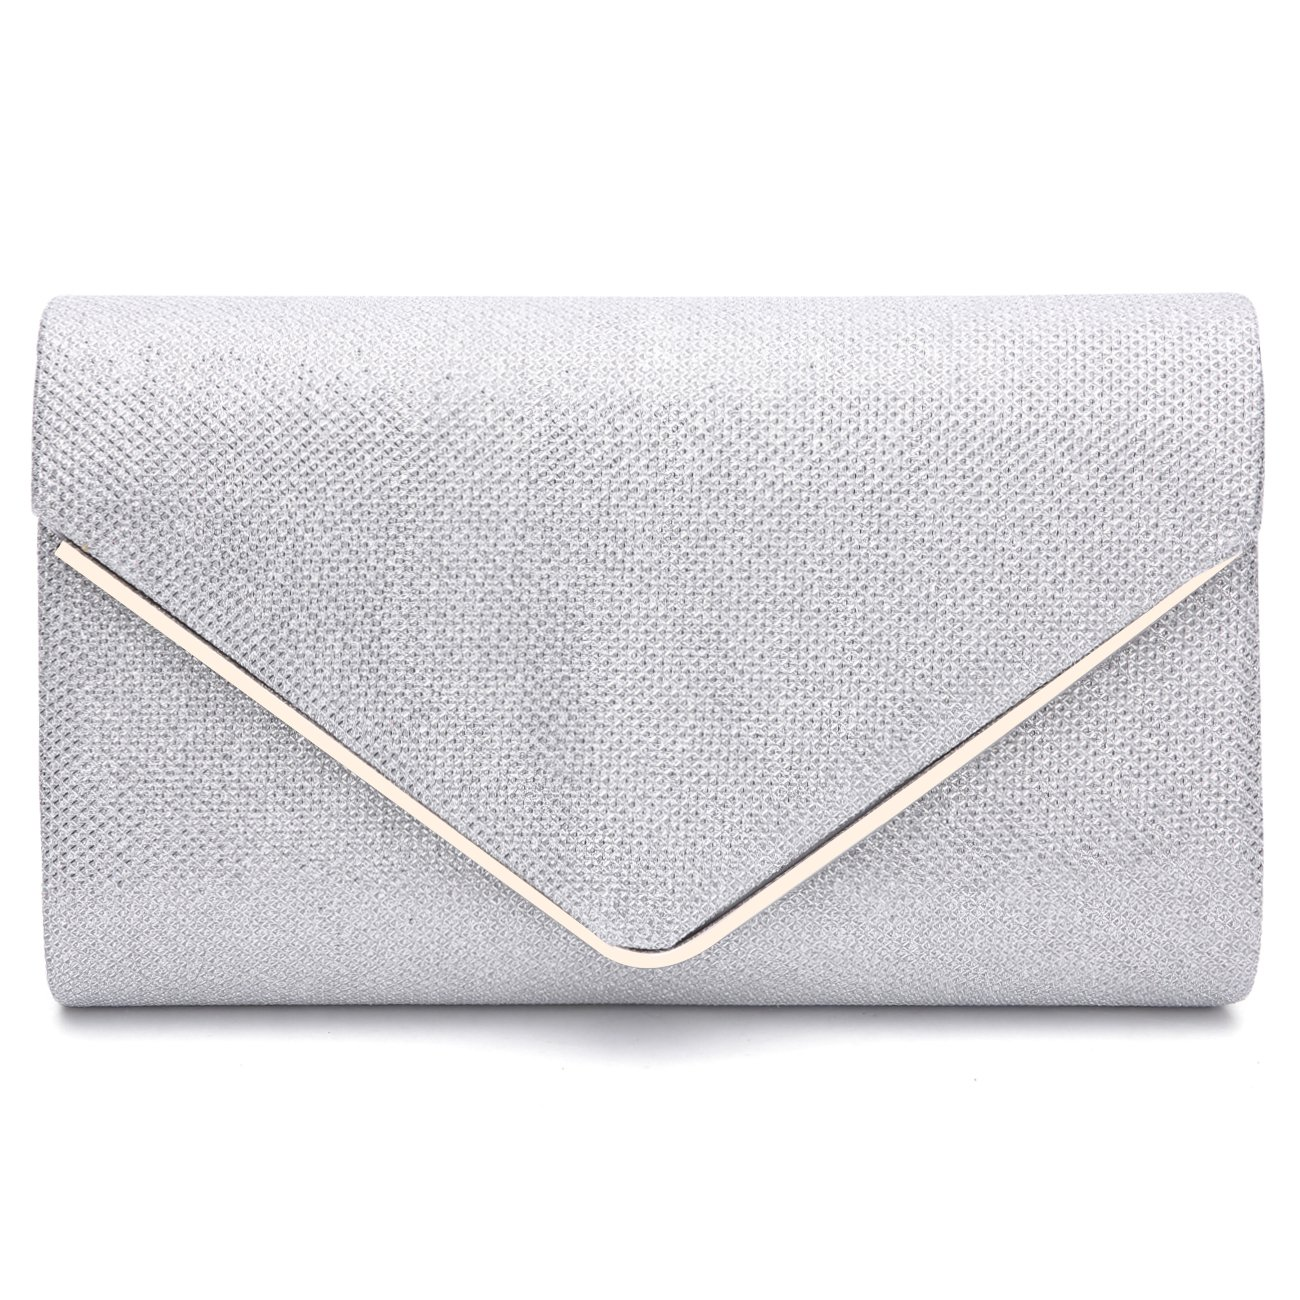 GESU Womens Shining Envelope Clutch Purses Evening Bag Handbags For Wedding and Party.(Silver-1)